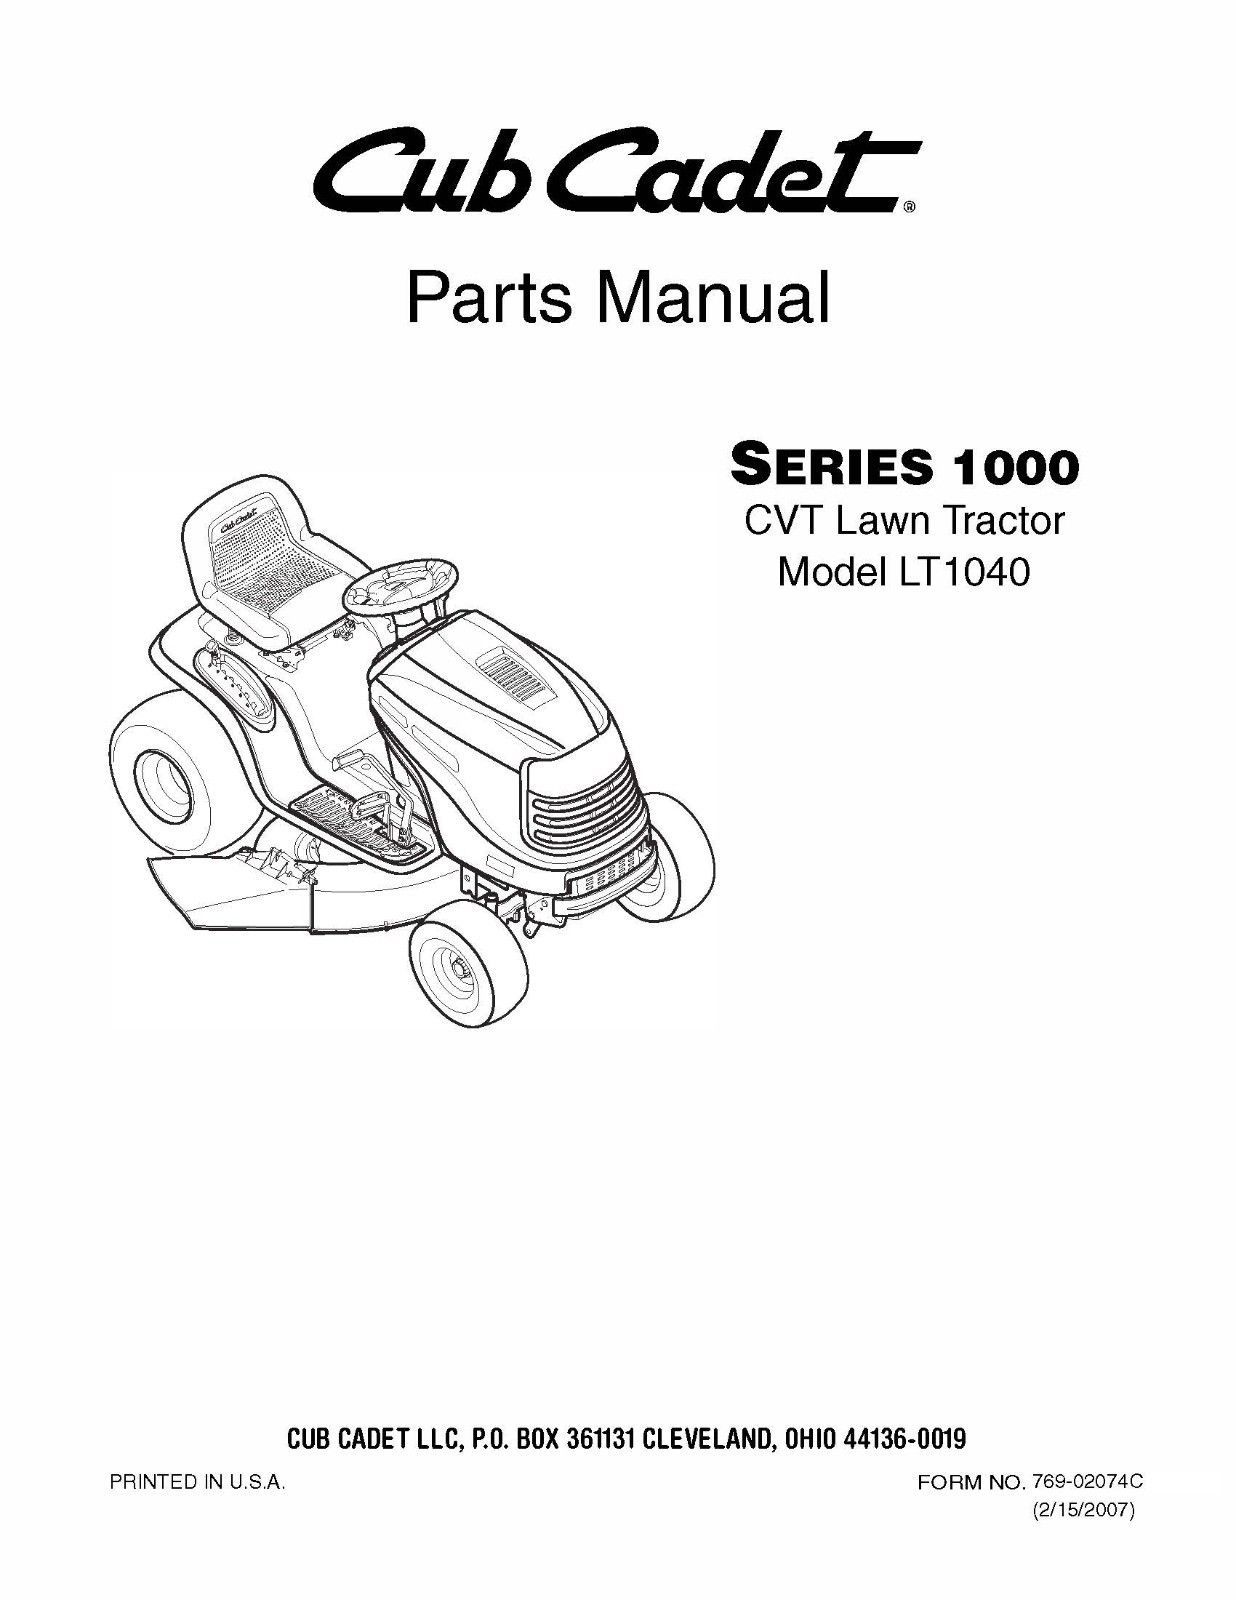 Cub Cadet 1000 Series CVT Lawn Tractor Parts Manual Model No. LT 1040